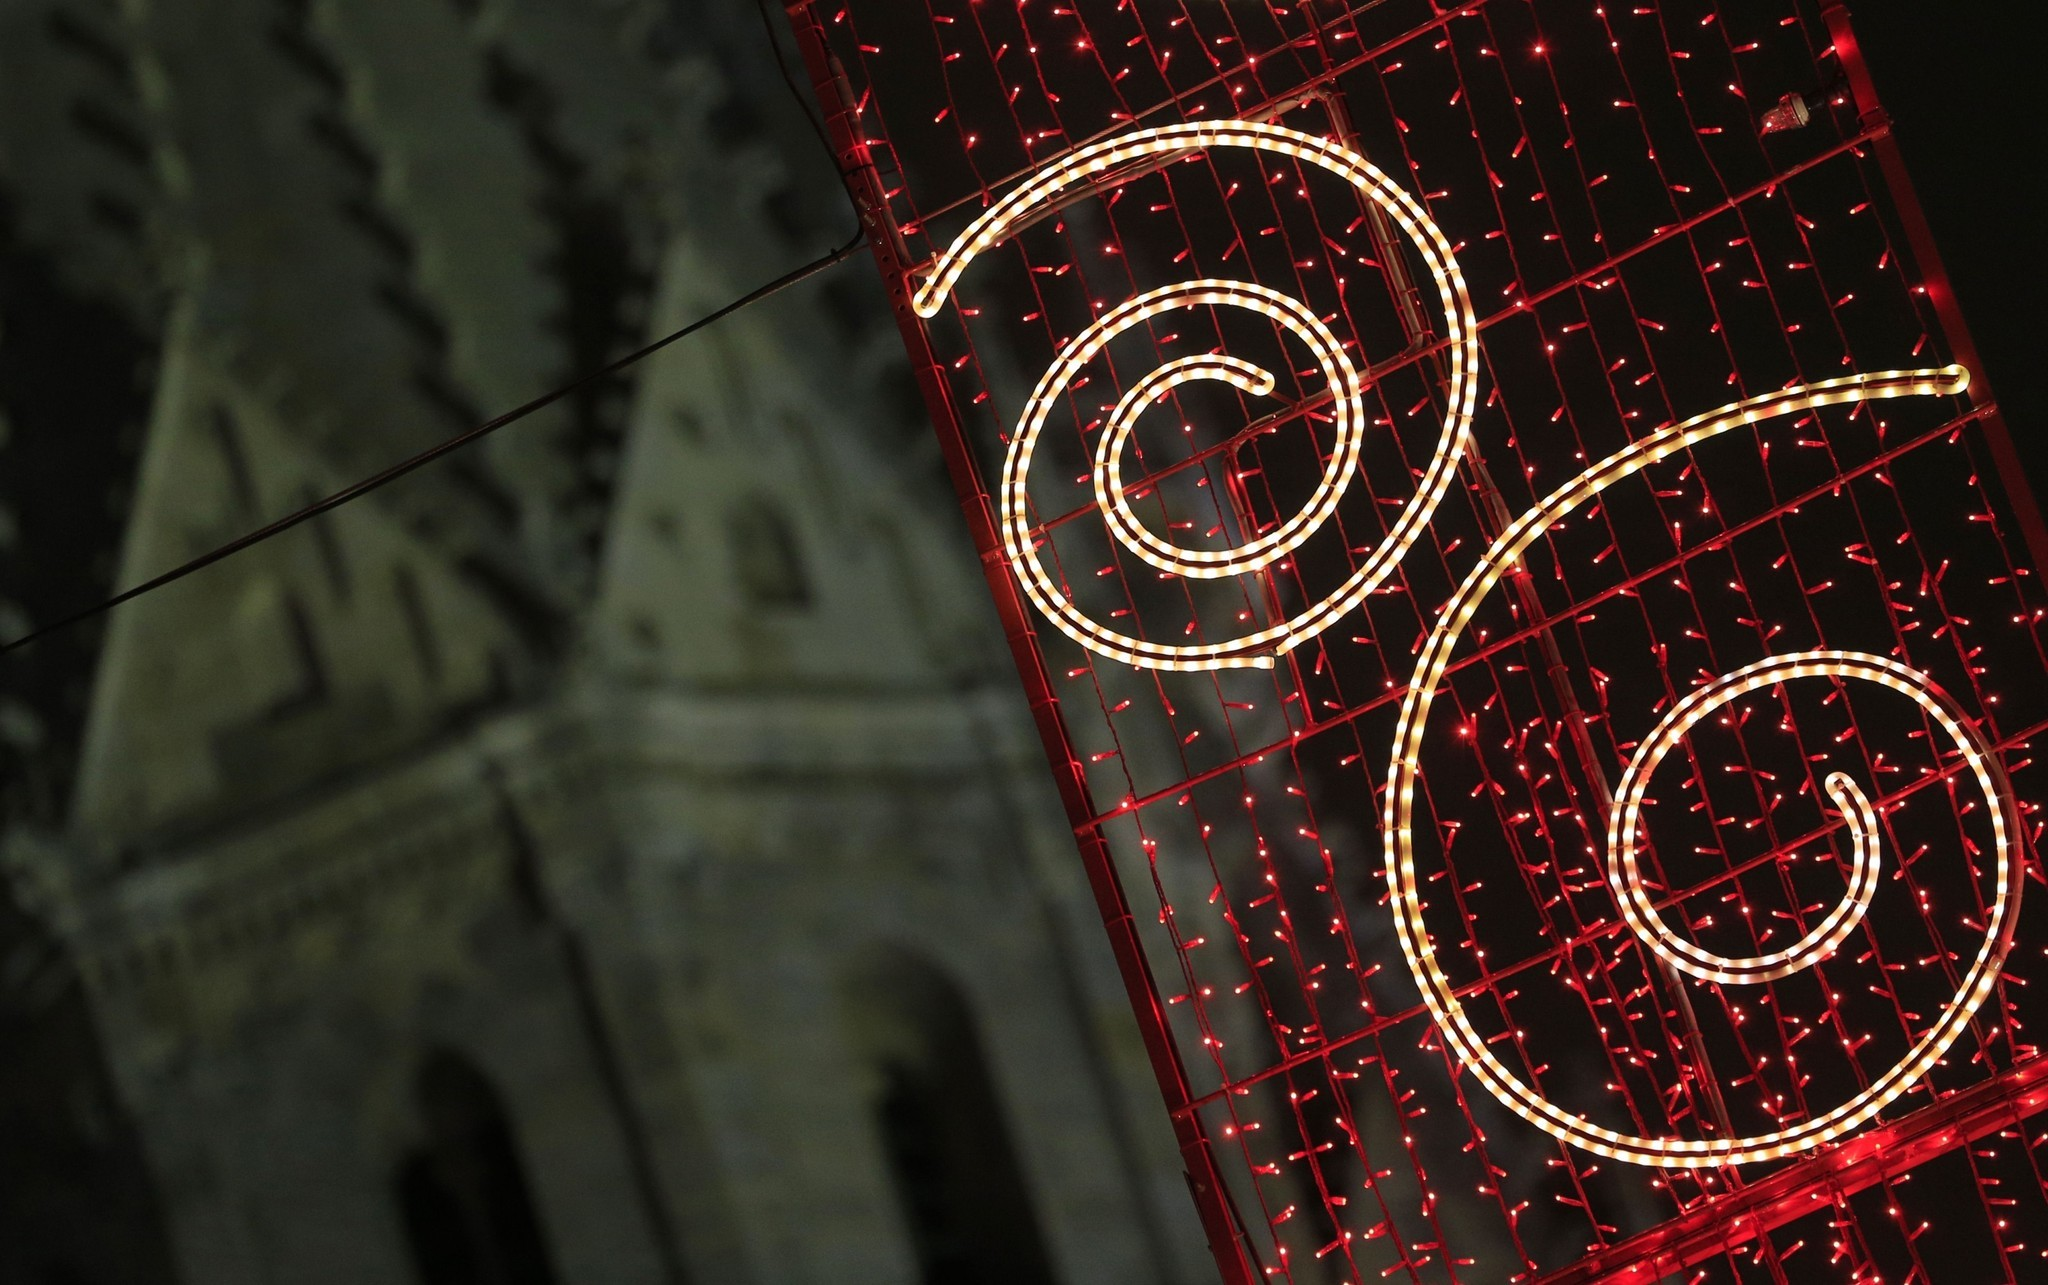 Pictures: Holiday lights from around the globe - Austrian Christmas